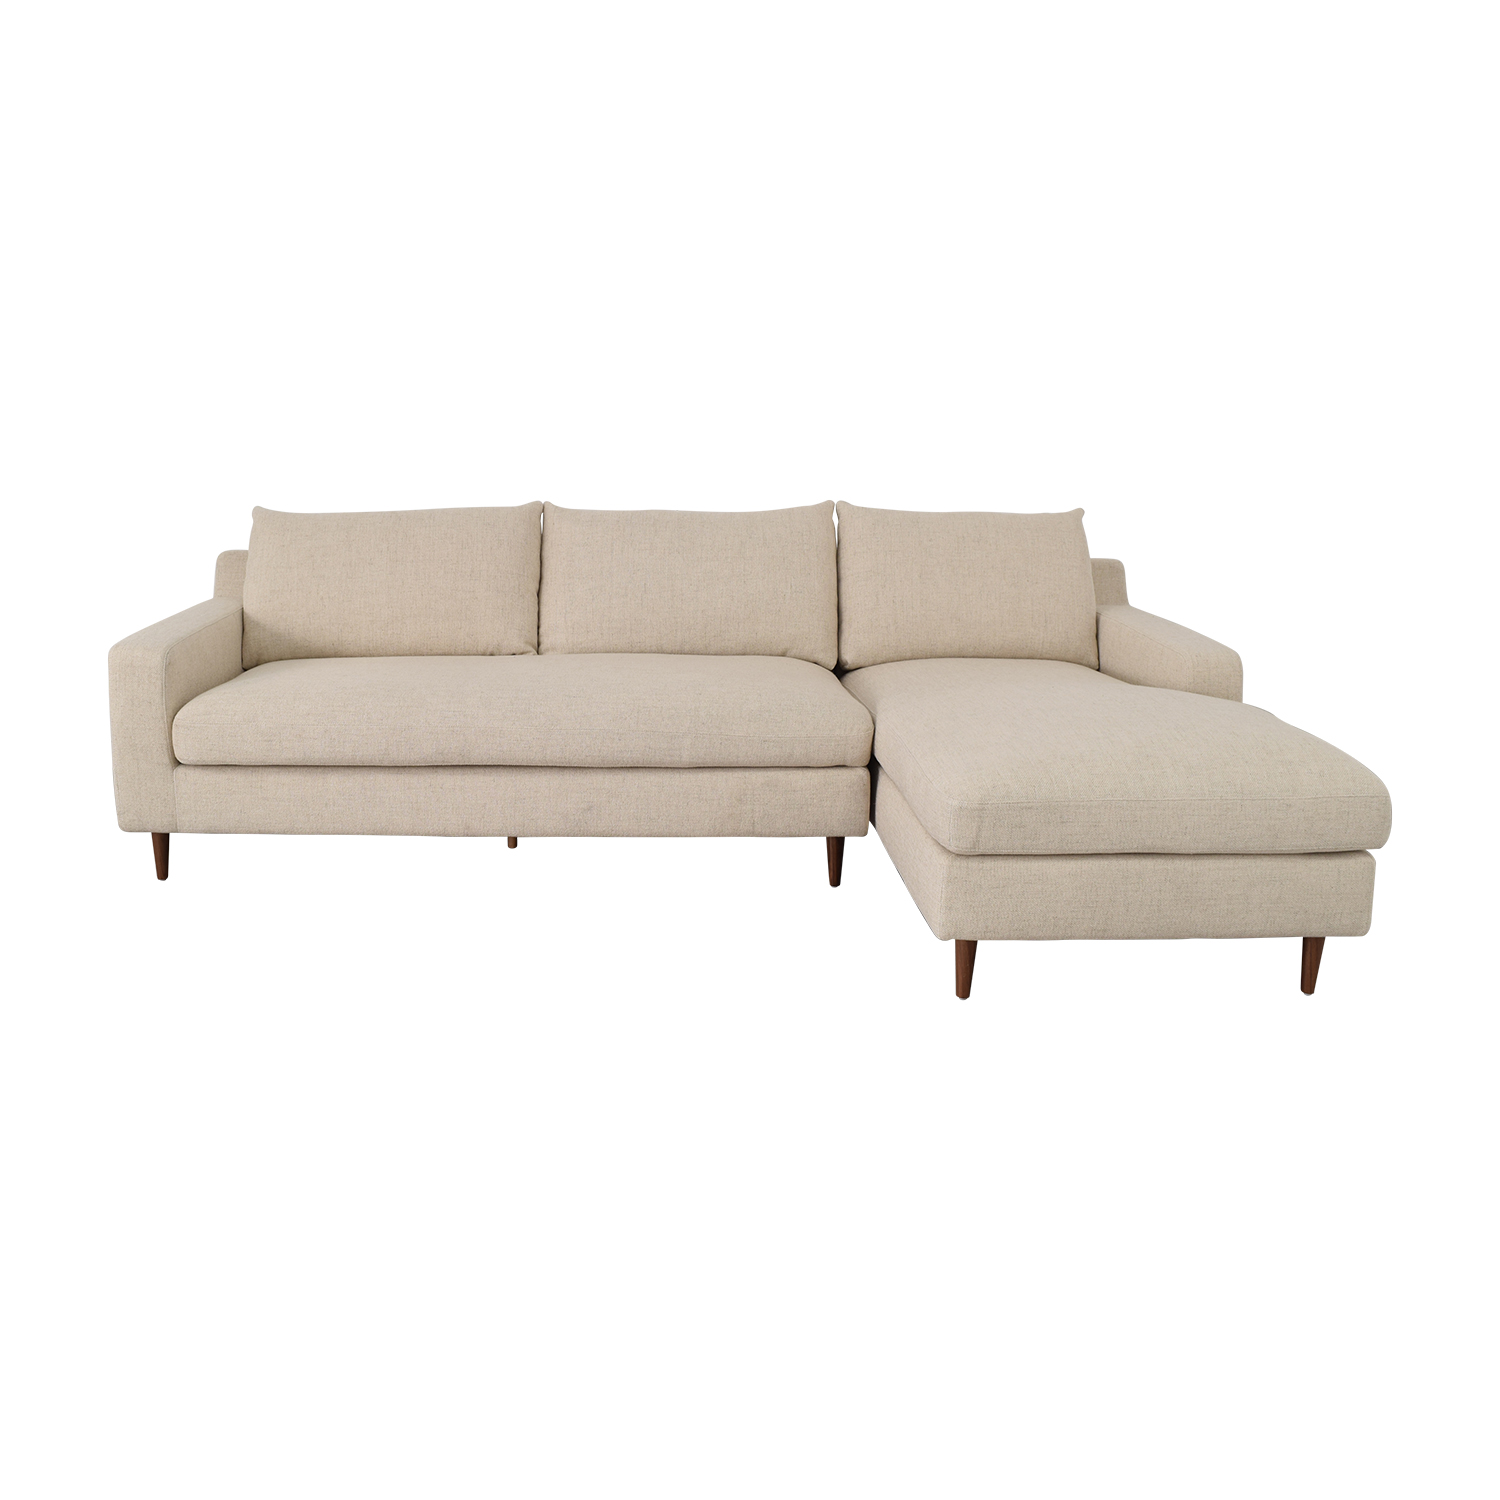 Interior Define Sloan Beige Right Arm Chaise Sectional Sofas